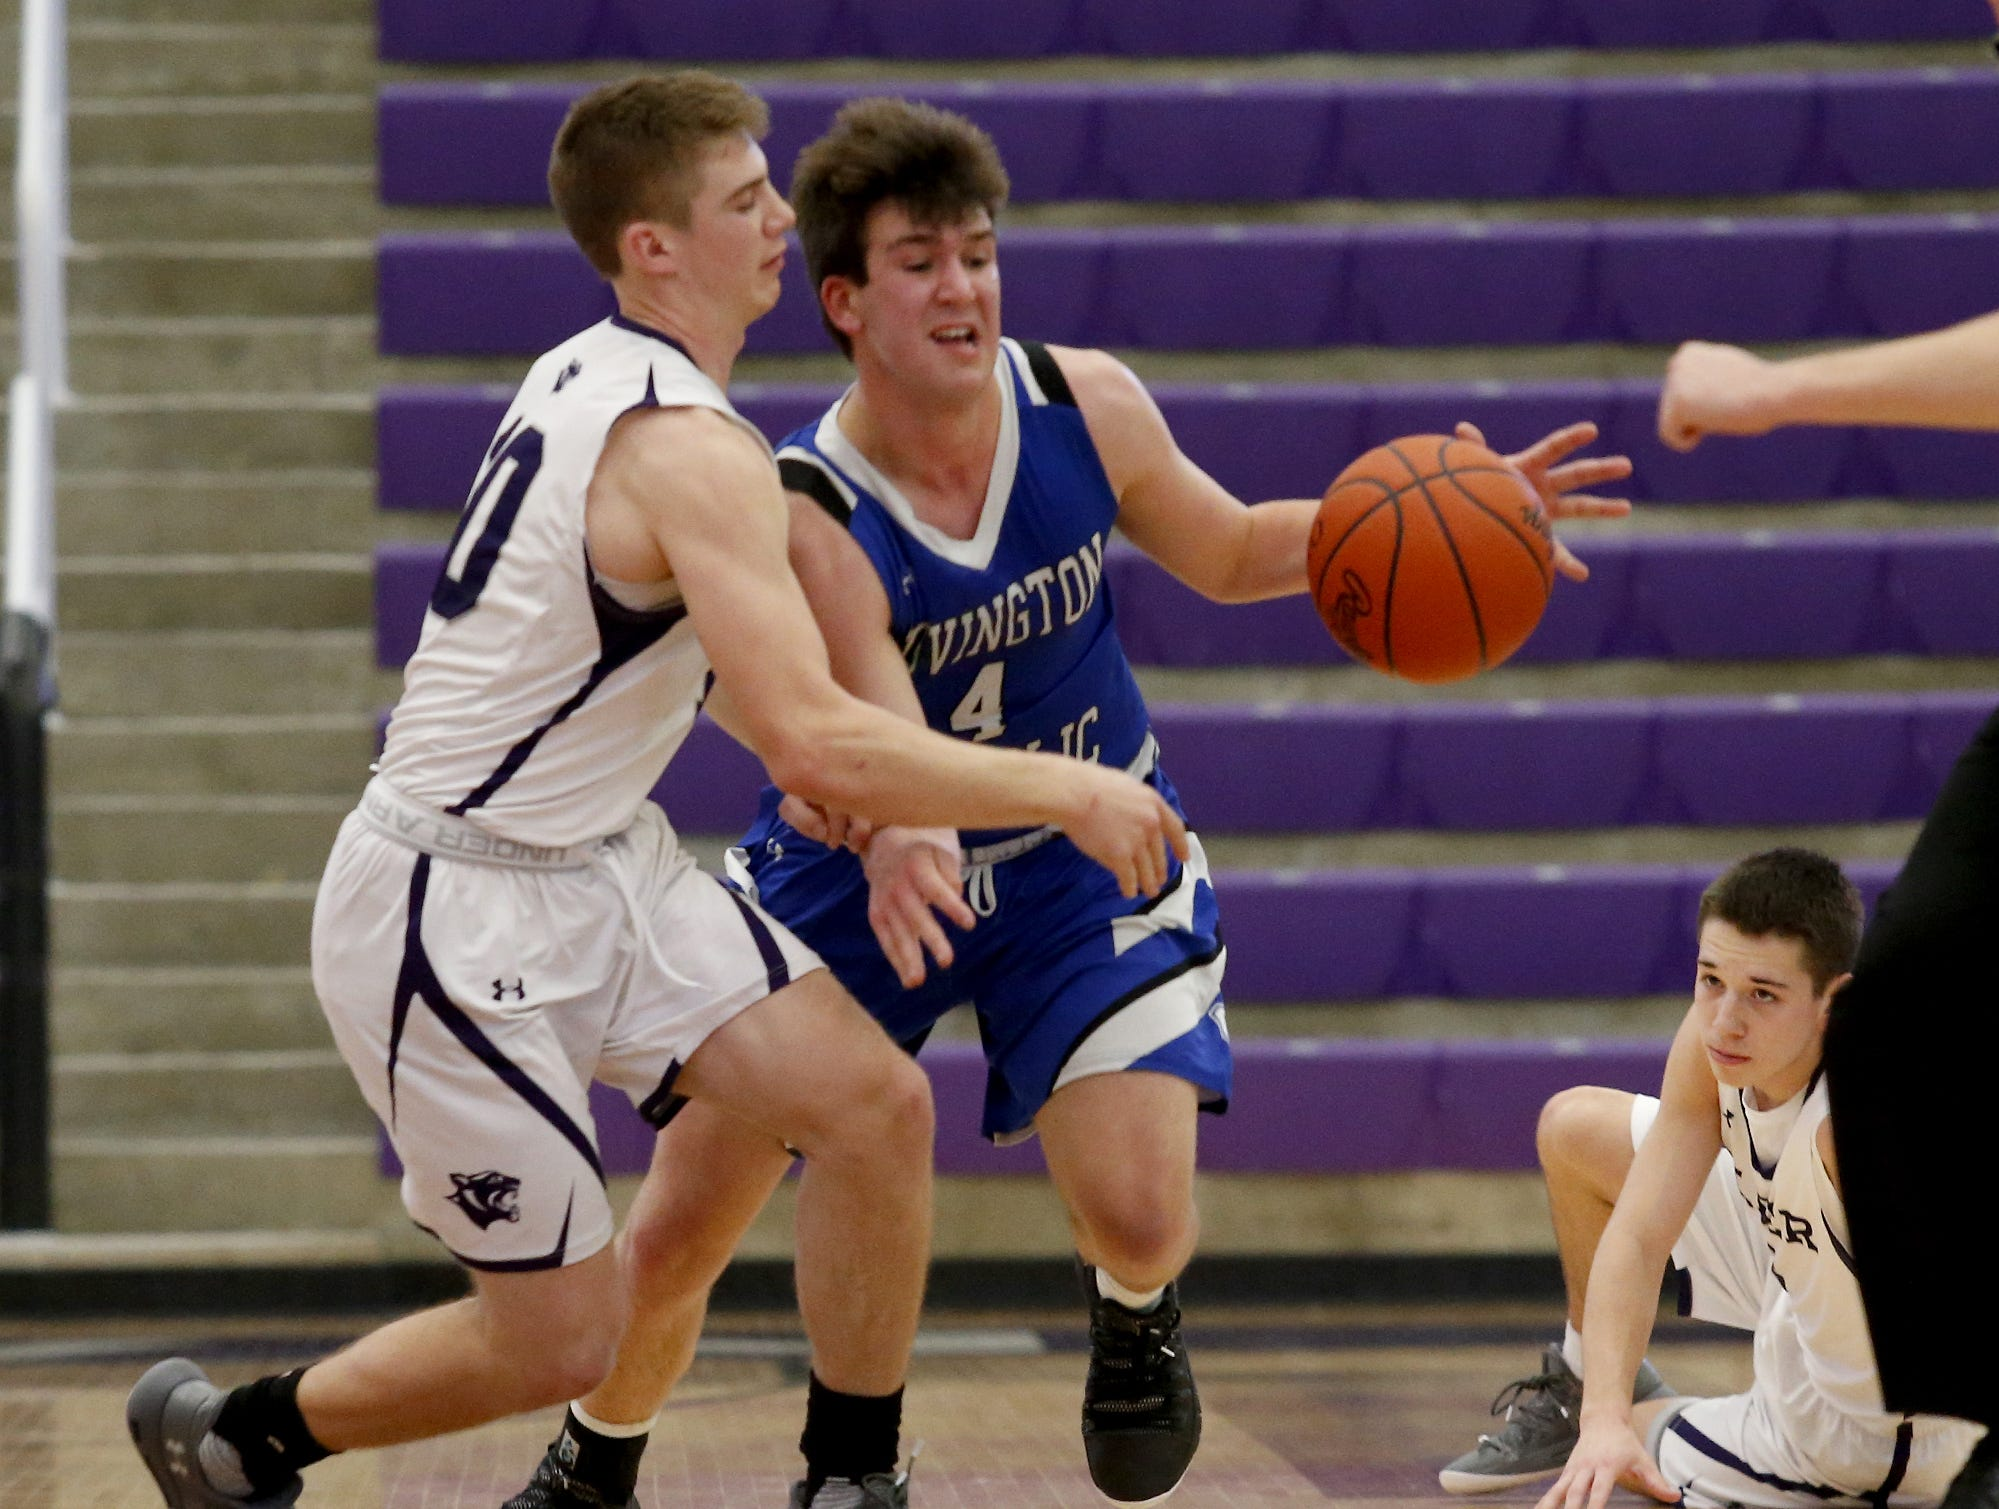 Covington Catholic forward Joey Moser tries to keep control as Elder guard Matthew Luebbe pressures during the Midwest King Classic at Jerry Lucas Court in Wade E. Miller Arena in Middletown Saturday, Jan. 19, 2019.